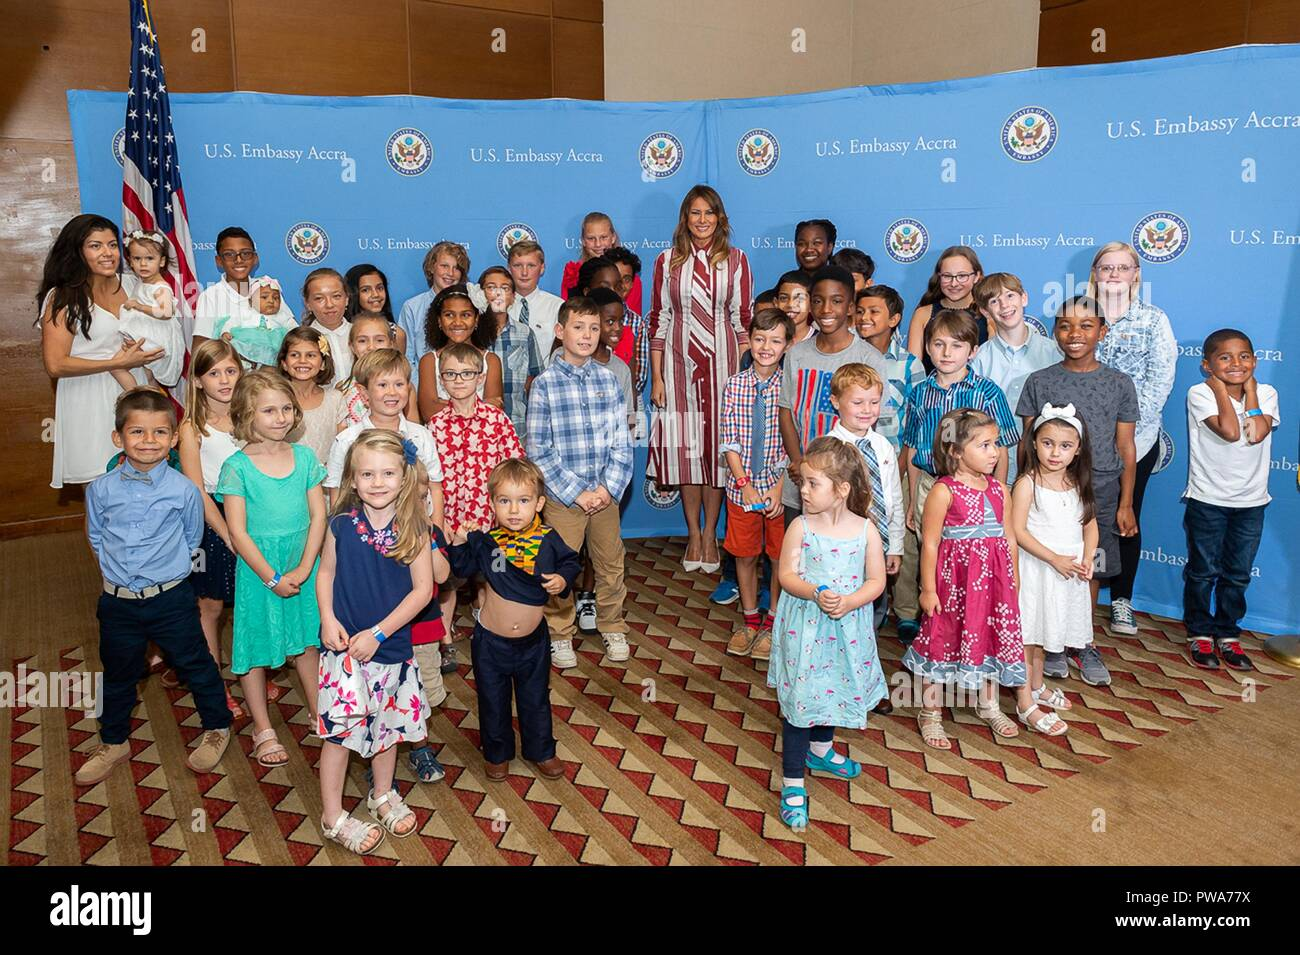 U.S First Lady Melania Trump poses for photos and meets with U.S. Embassy Ghana employees and their families at the Movenpick Ambassador Hotel October 2, 2018 in Accra, Ghana. This is the first solo international trip by the First Lady. - Stock Image